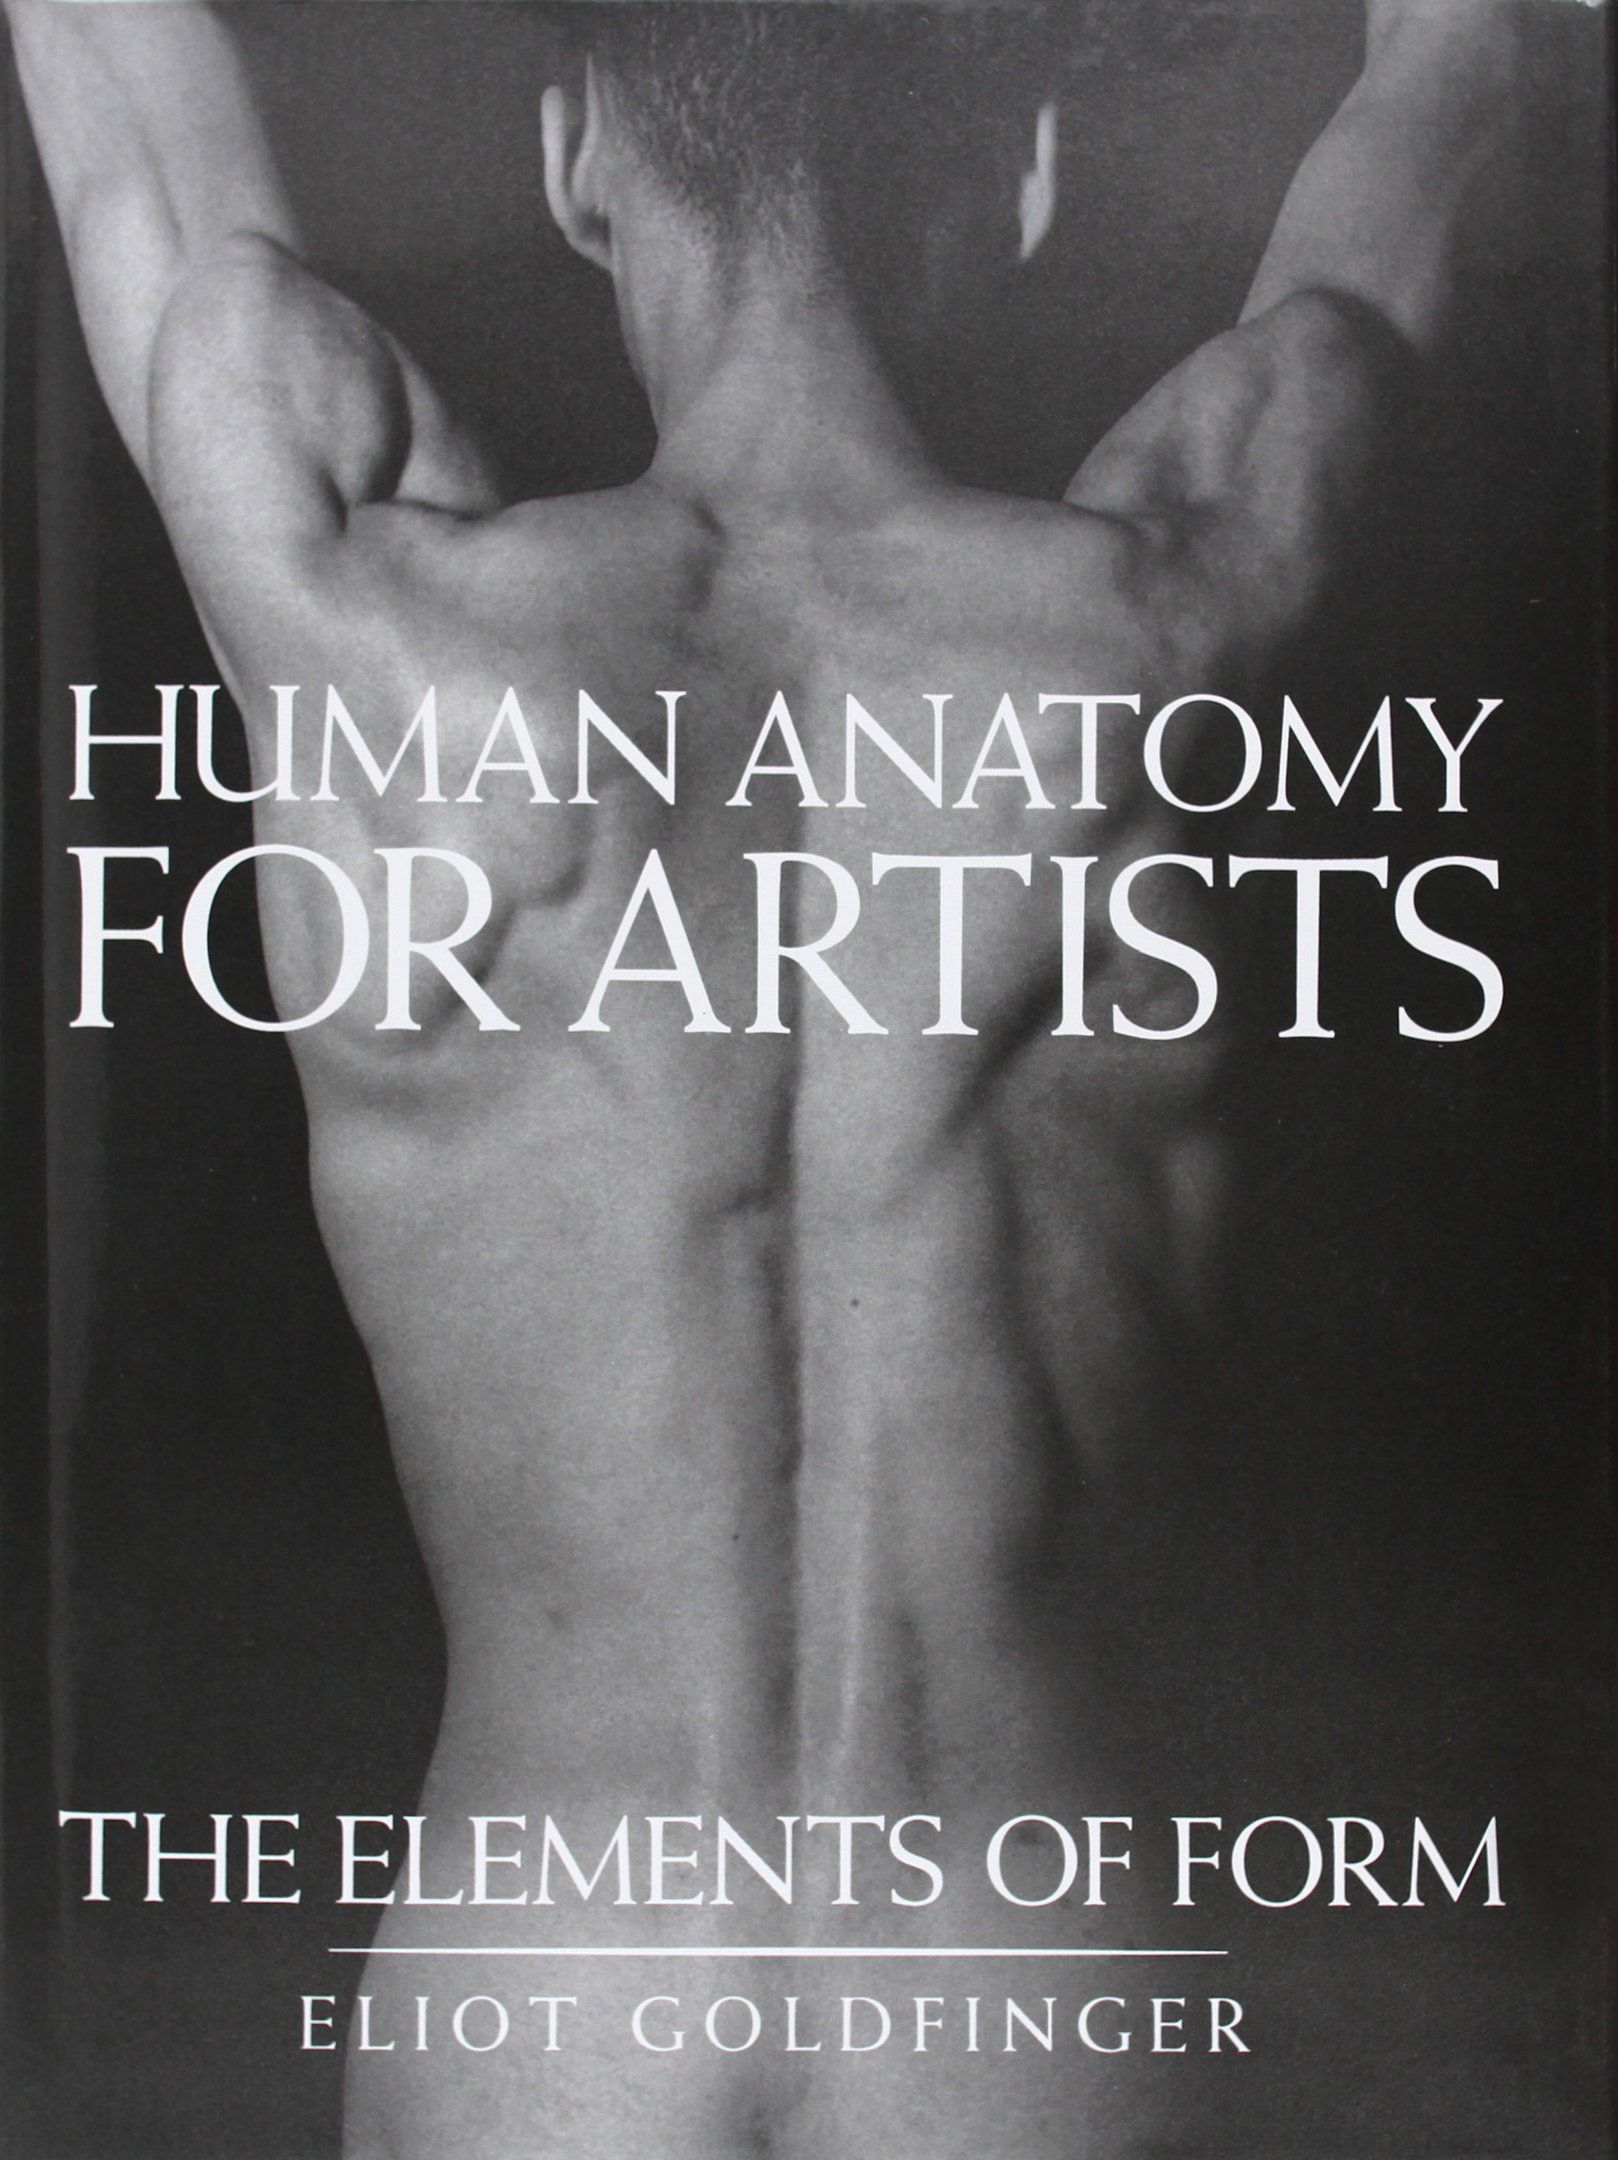 Human Anatomy for Artists: The Elements of Form by Eliot Goldfinger ...